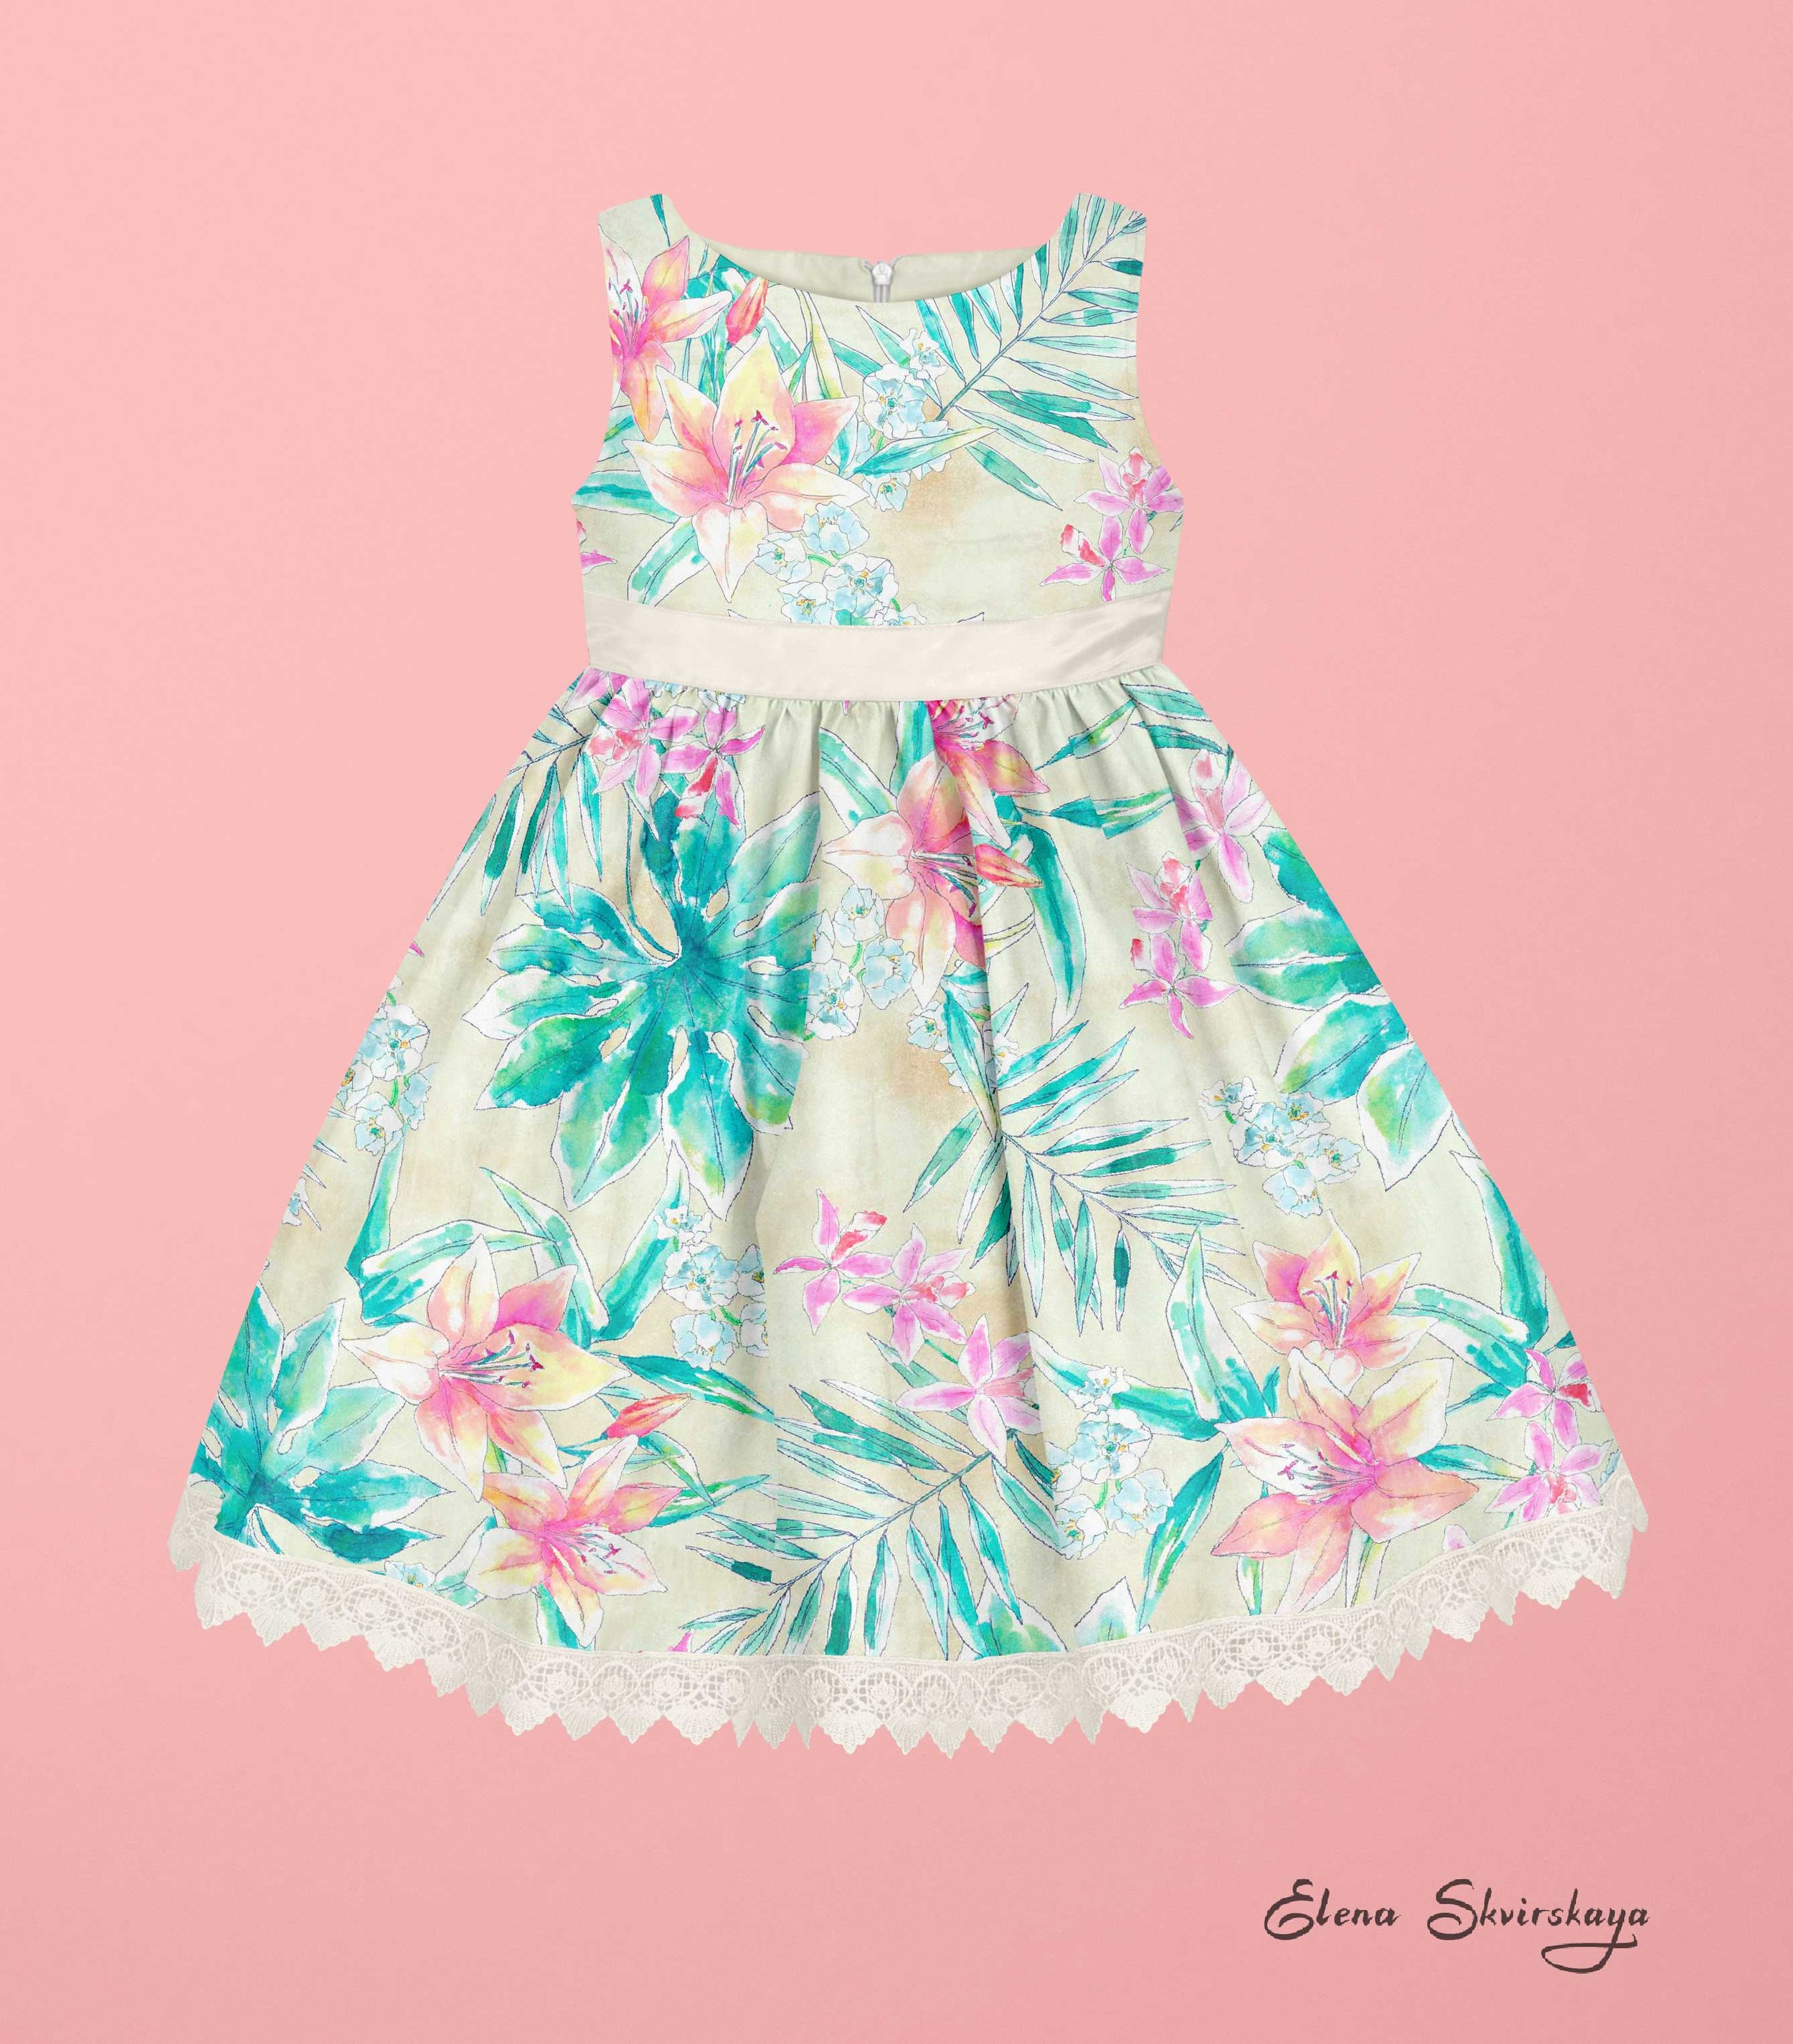 mock-up of a tropical watercolor print on a girl's dress, lilies, palm leaves